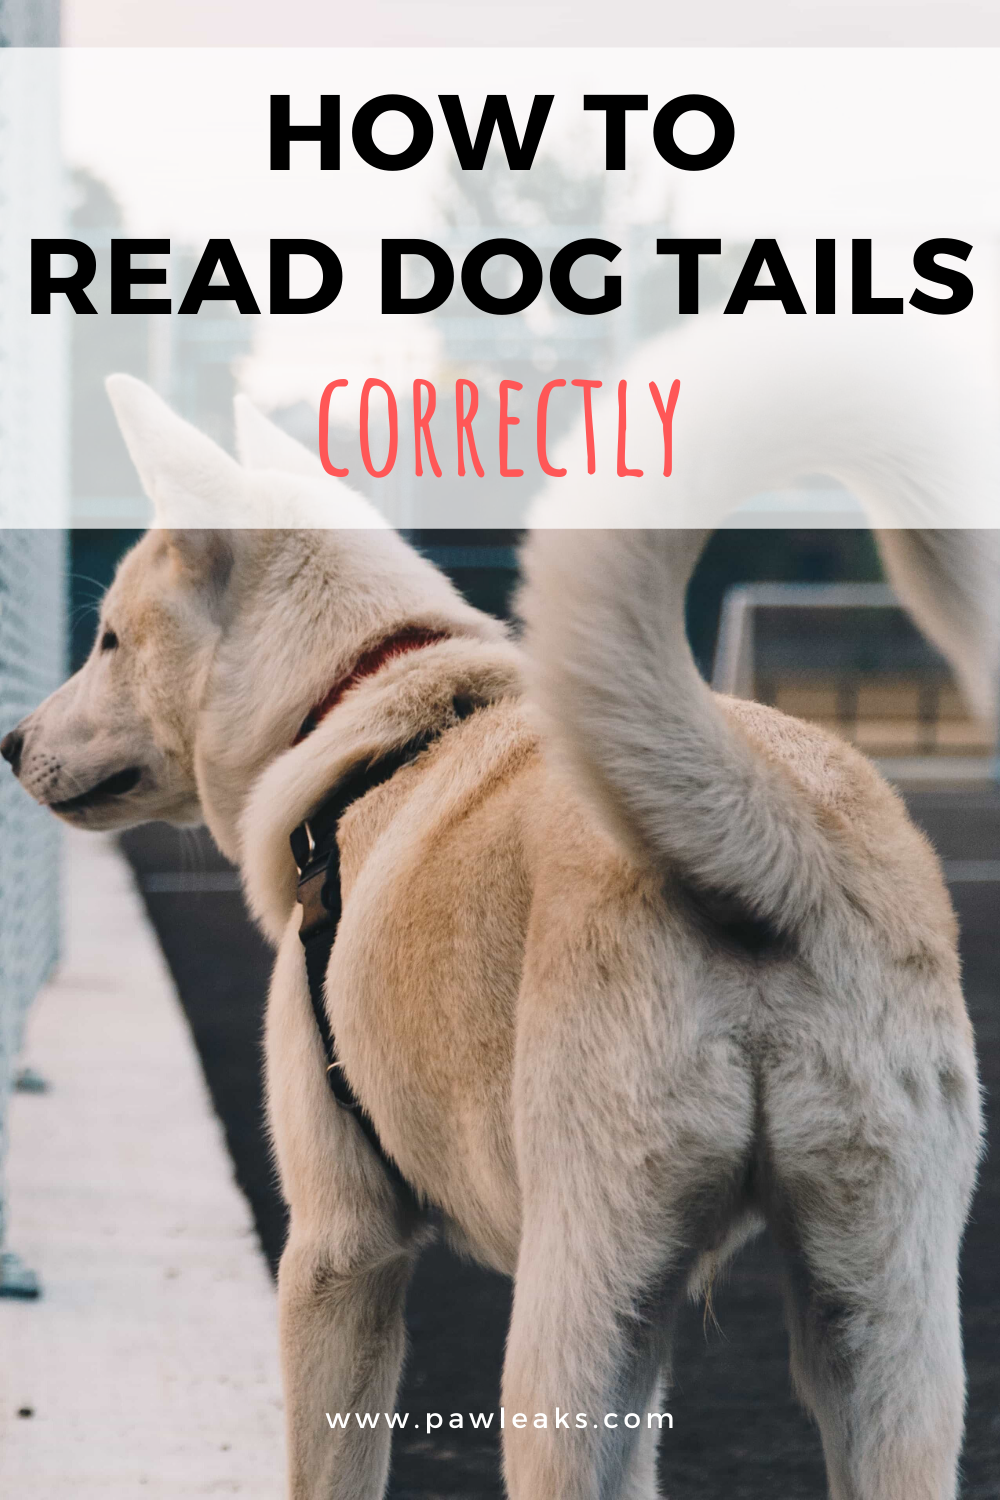 Dog Tail Down Or Up And Stiff Dog Tail Meaning Explained Pawleaks In 2020 Dog Tail Meaning Dogs Dog Body Language